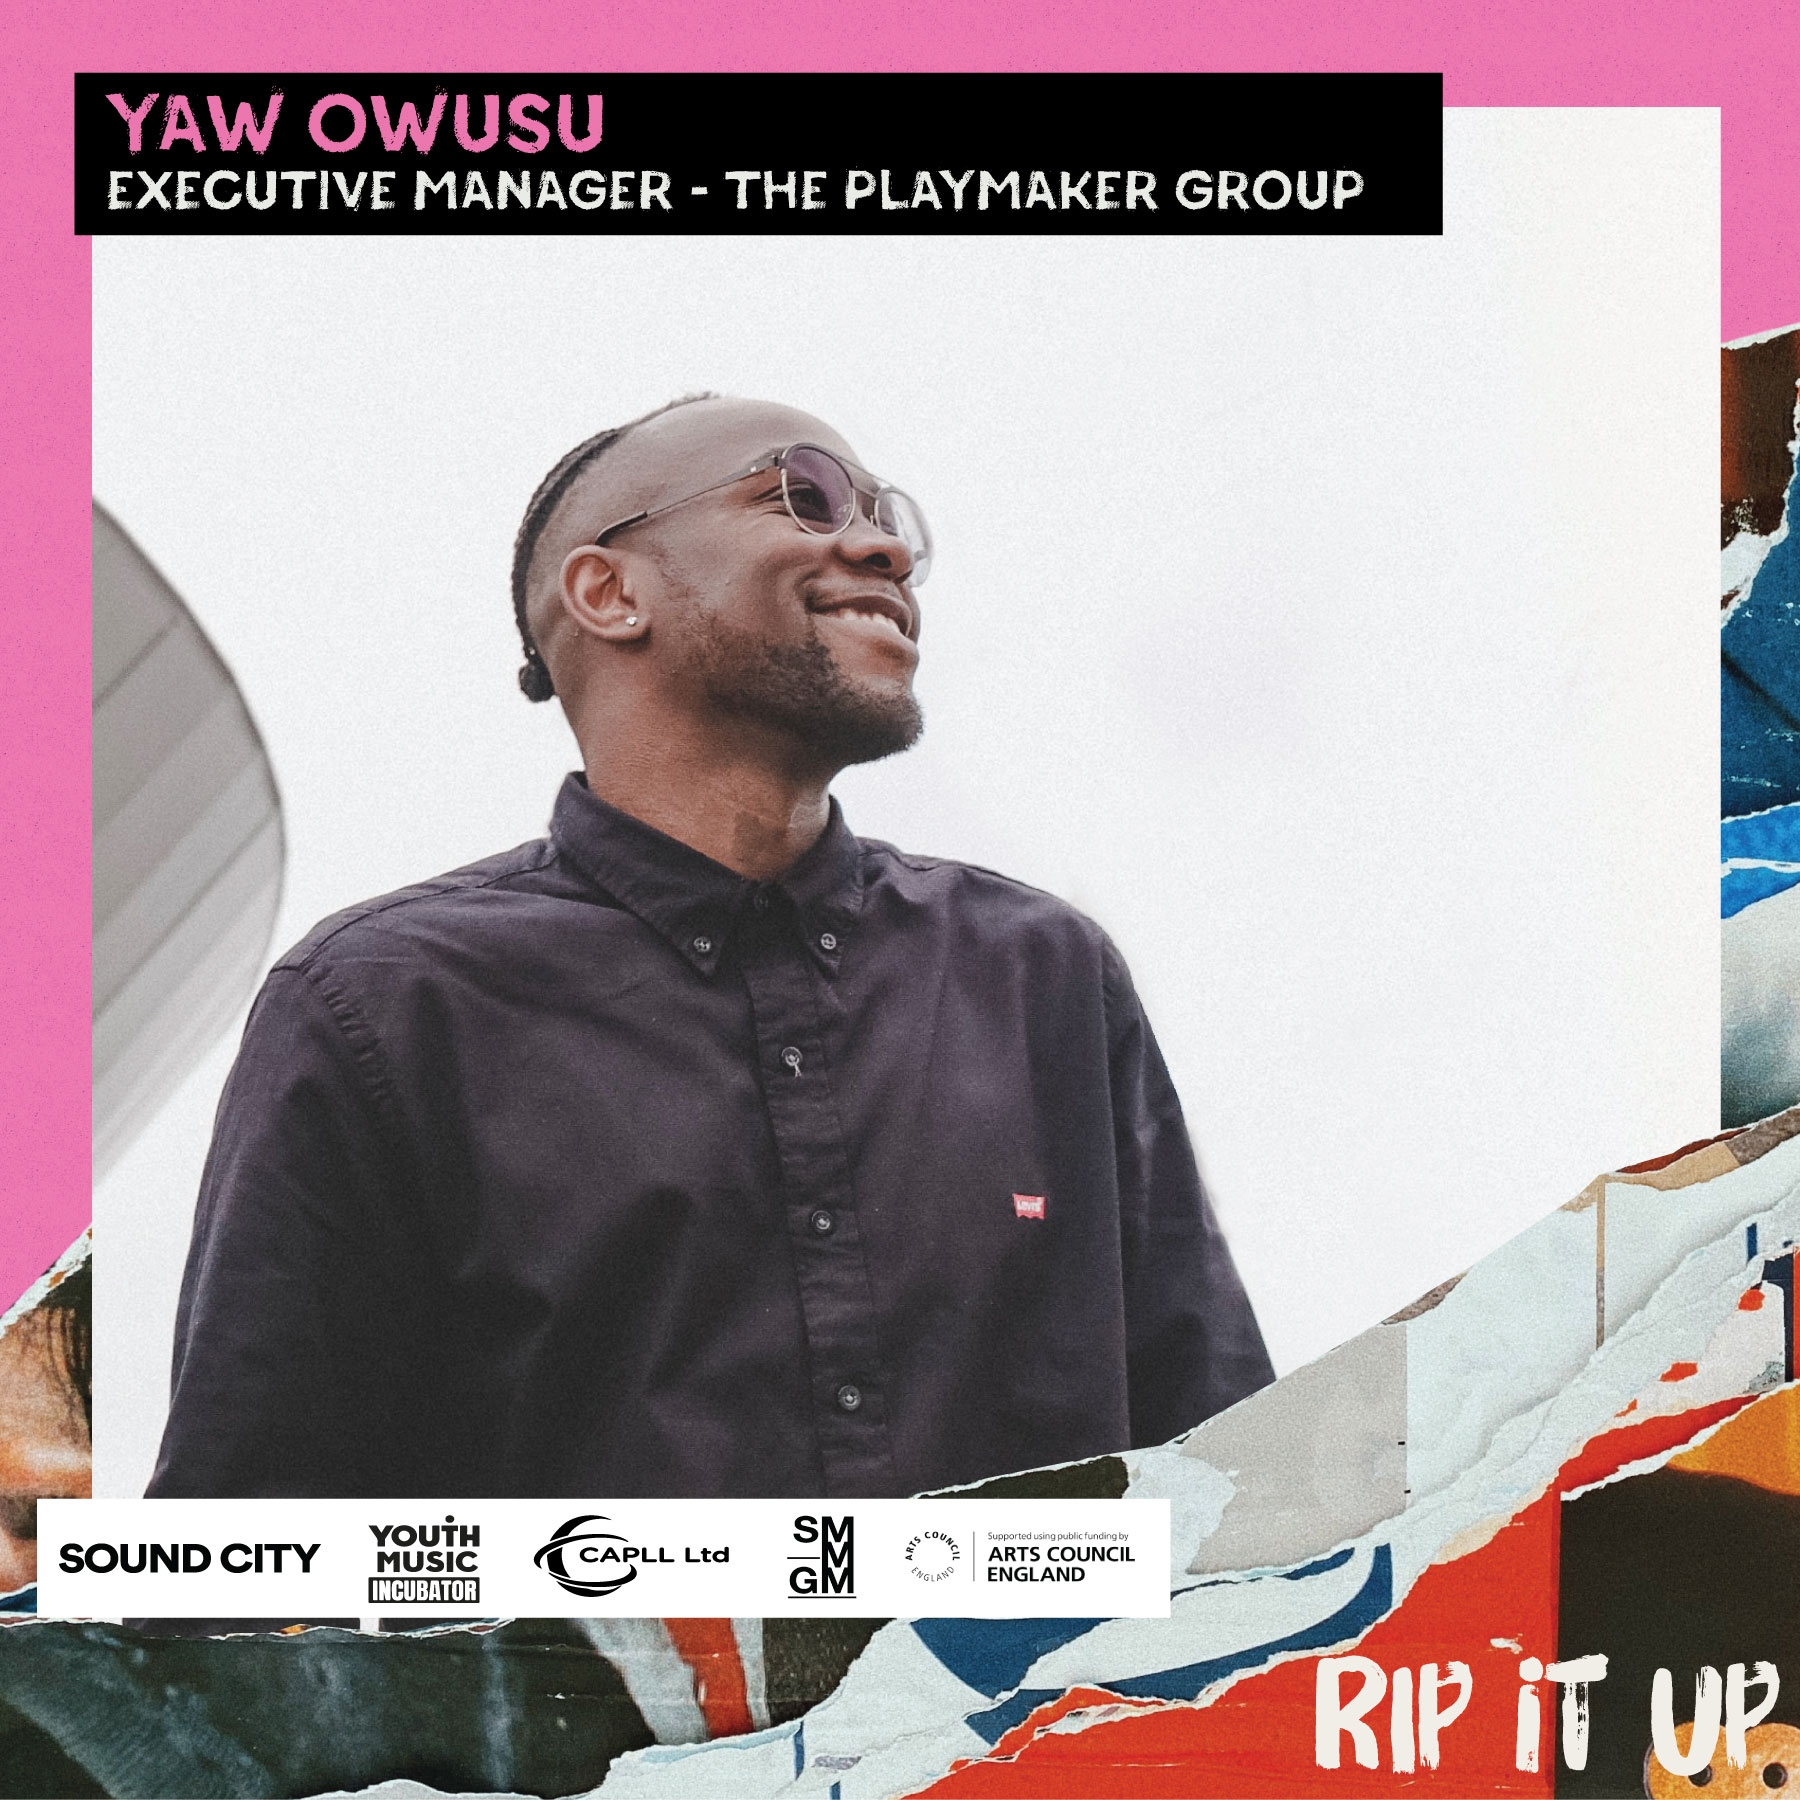 Meet Rip It Up's Yaw Owusu